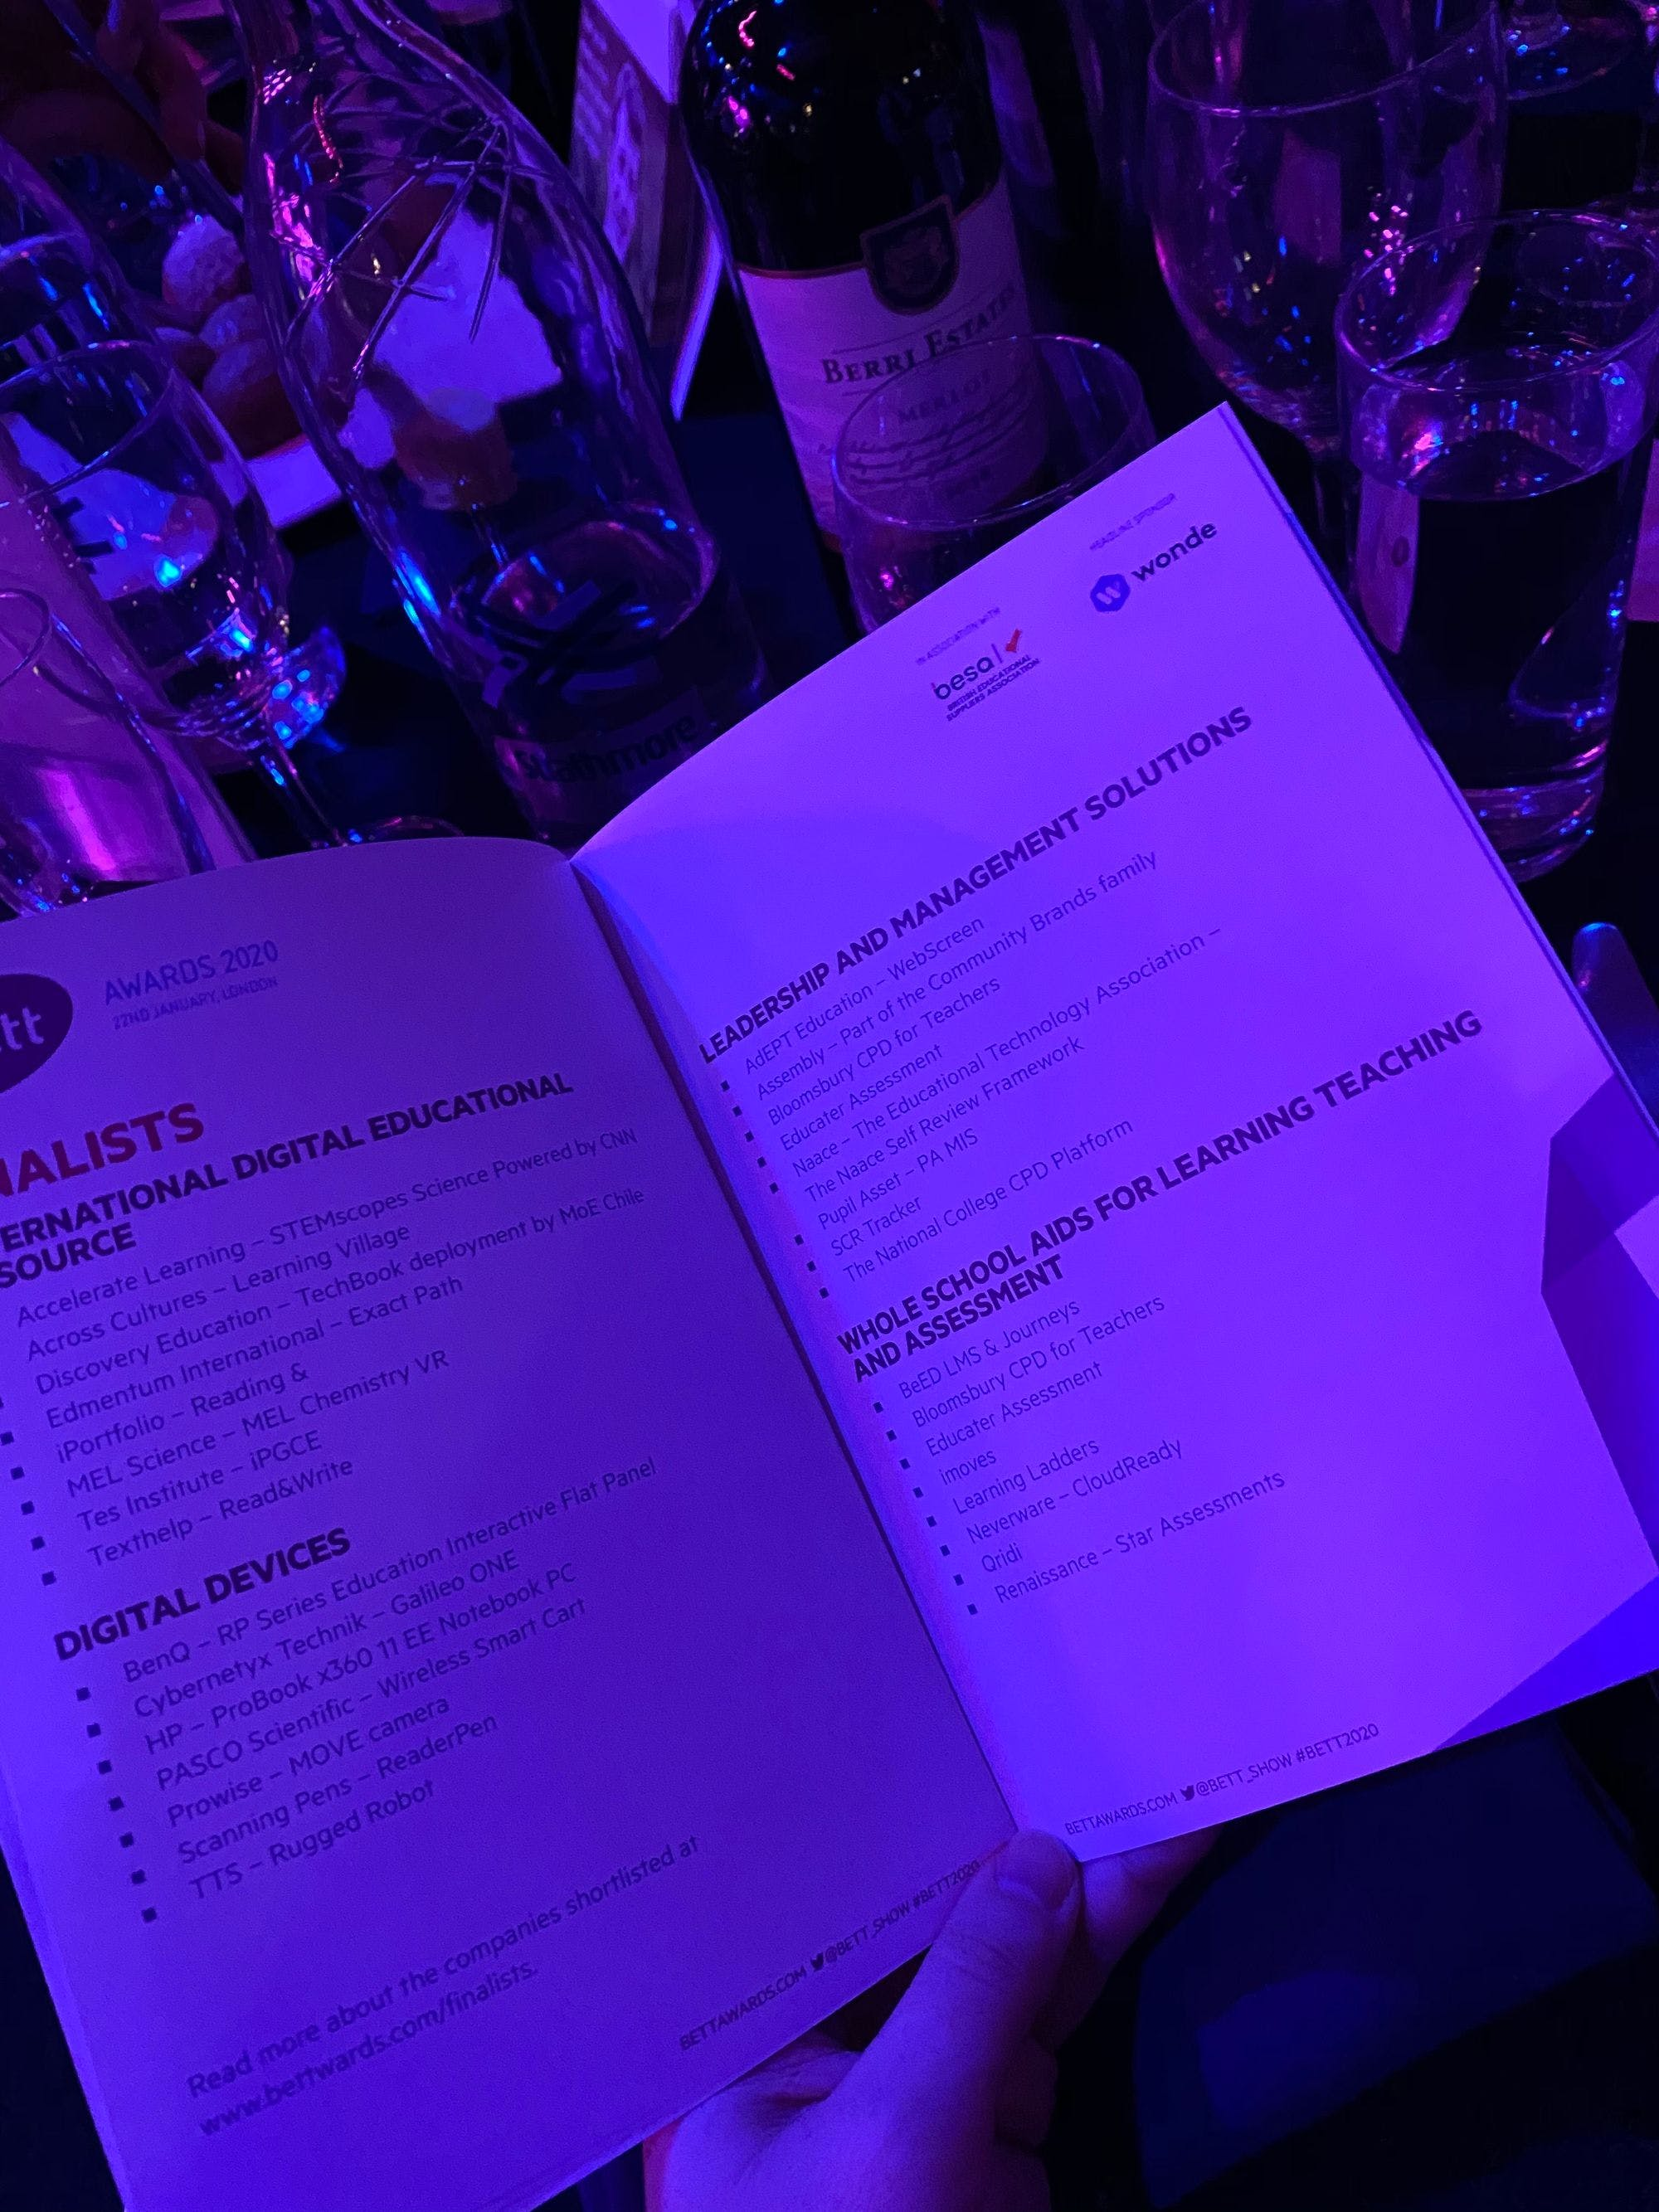 Bett Show Awards 2020 Troxy London menu finalists in leadership and management solutions single central register record online vetting checks appointment pre employment